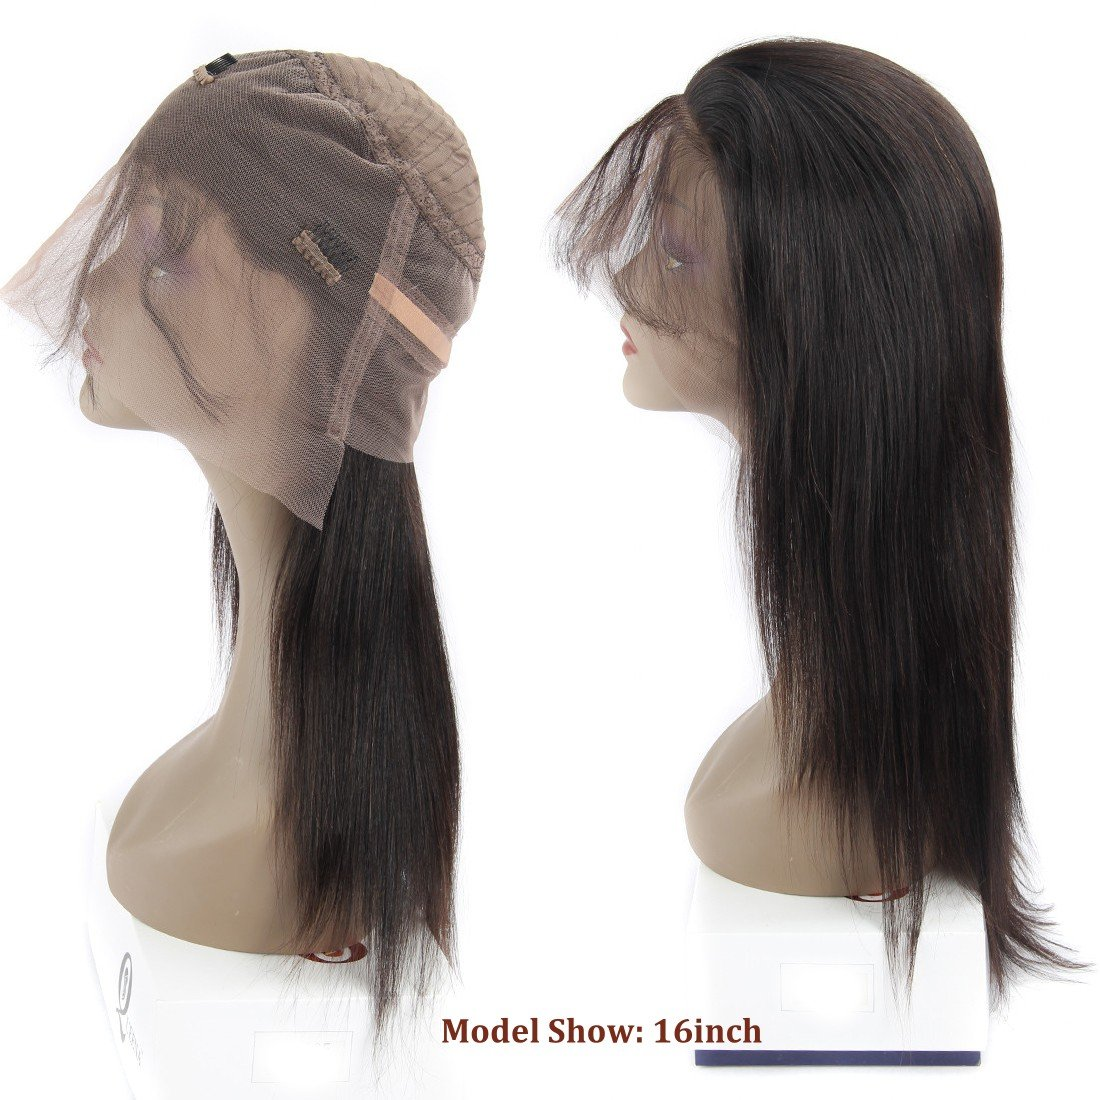 360 Frontal Lace Wig Straight 360 Lace Front Human Hair Wigs Peruvian Virgin 360 Lace Frontal Wig 130% Density with Pre Plucked Natural Hairline Baby Hair 360 Degree Lace Human Hair Wig (14inch) by QUEENA (Image #4)